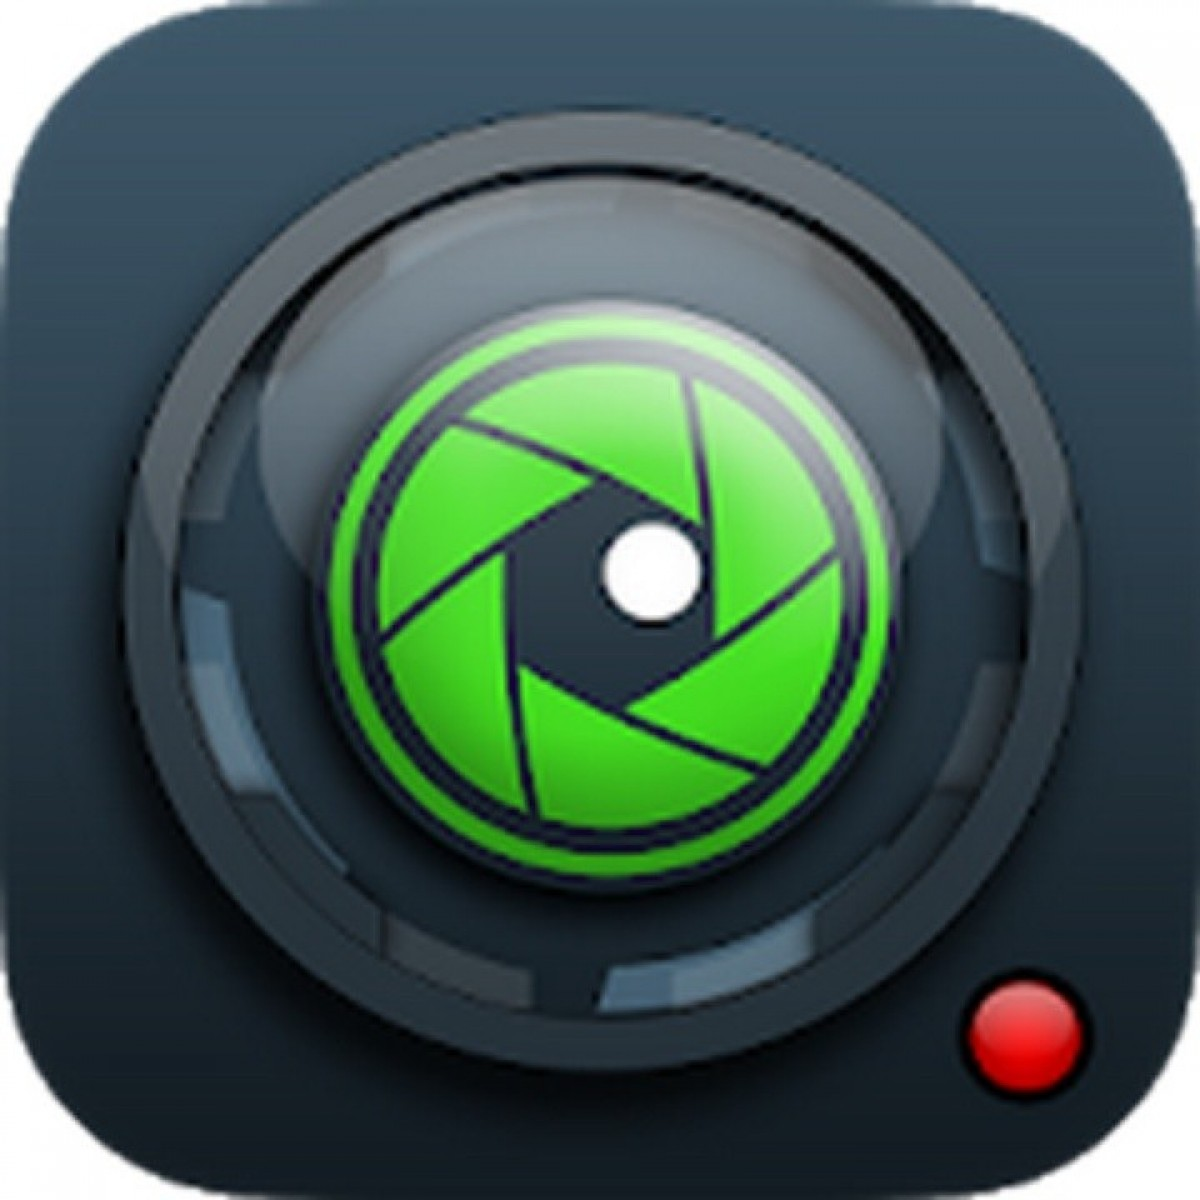 Pro Android APK - (Google GO) (DNS Changer AD Free) (Night Vision